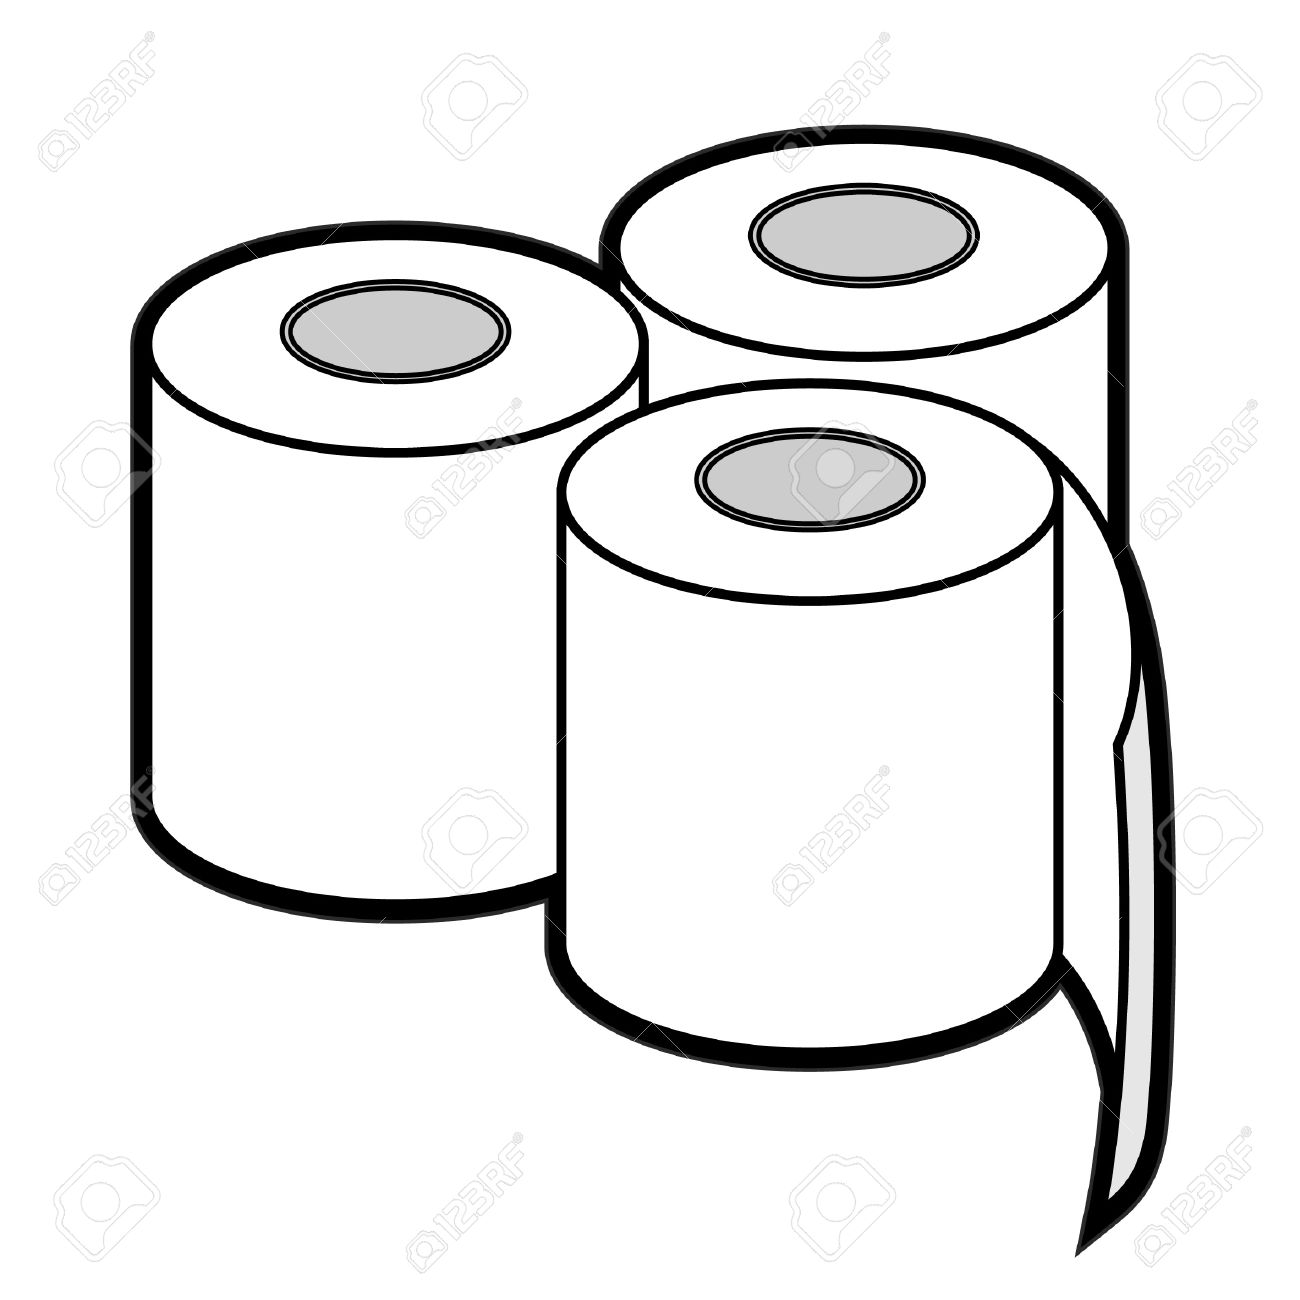 Collection of Toilet paper clipart.